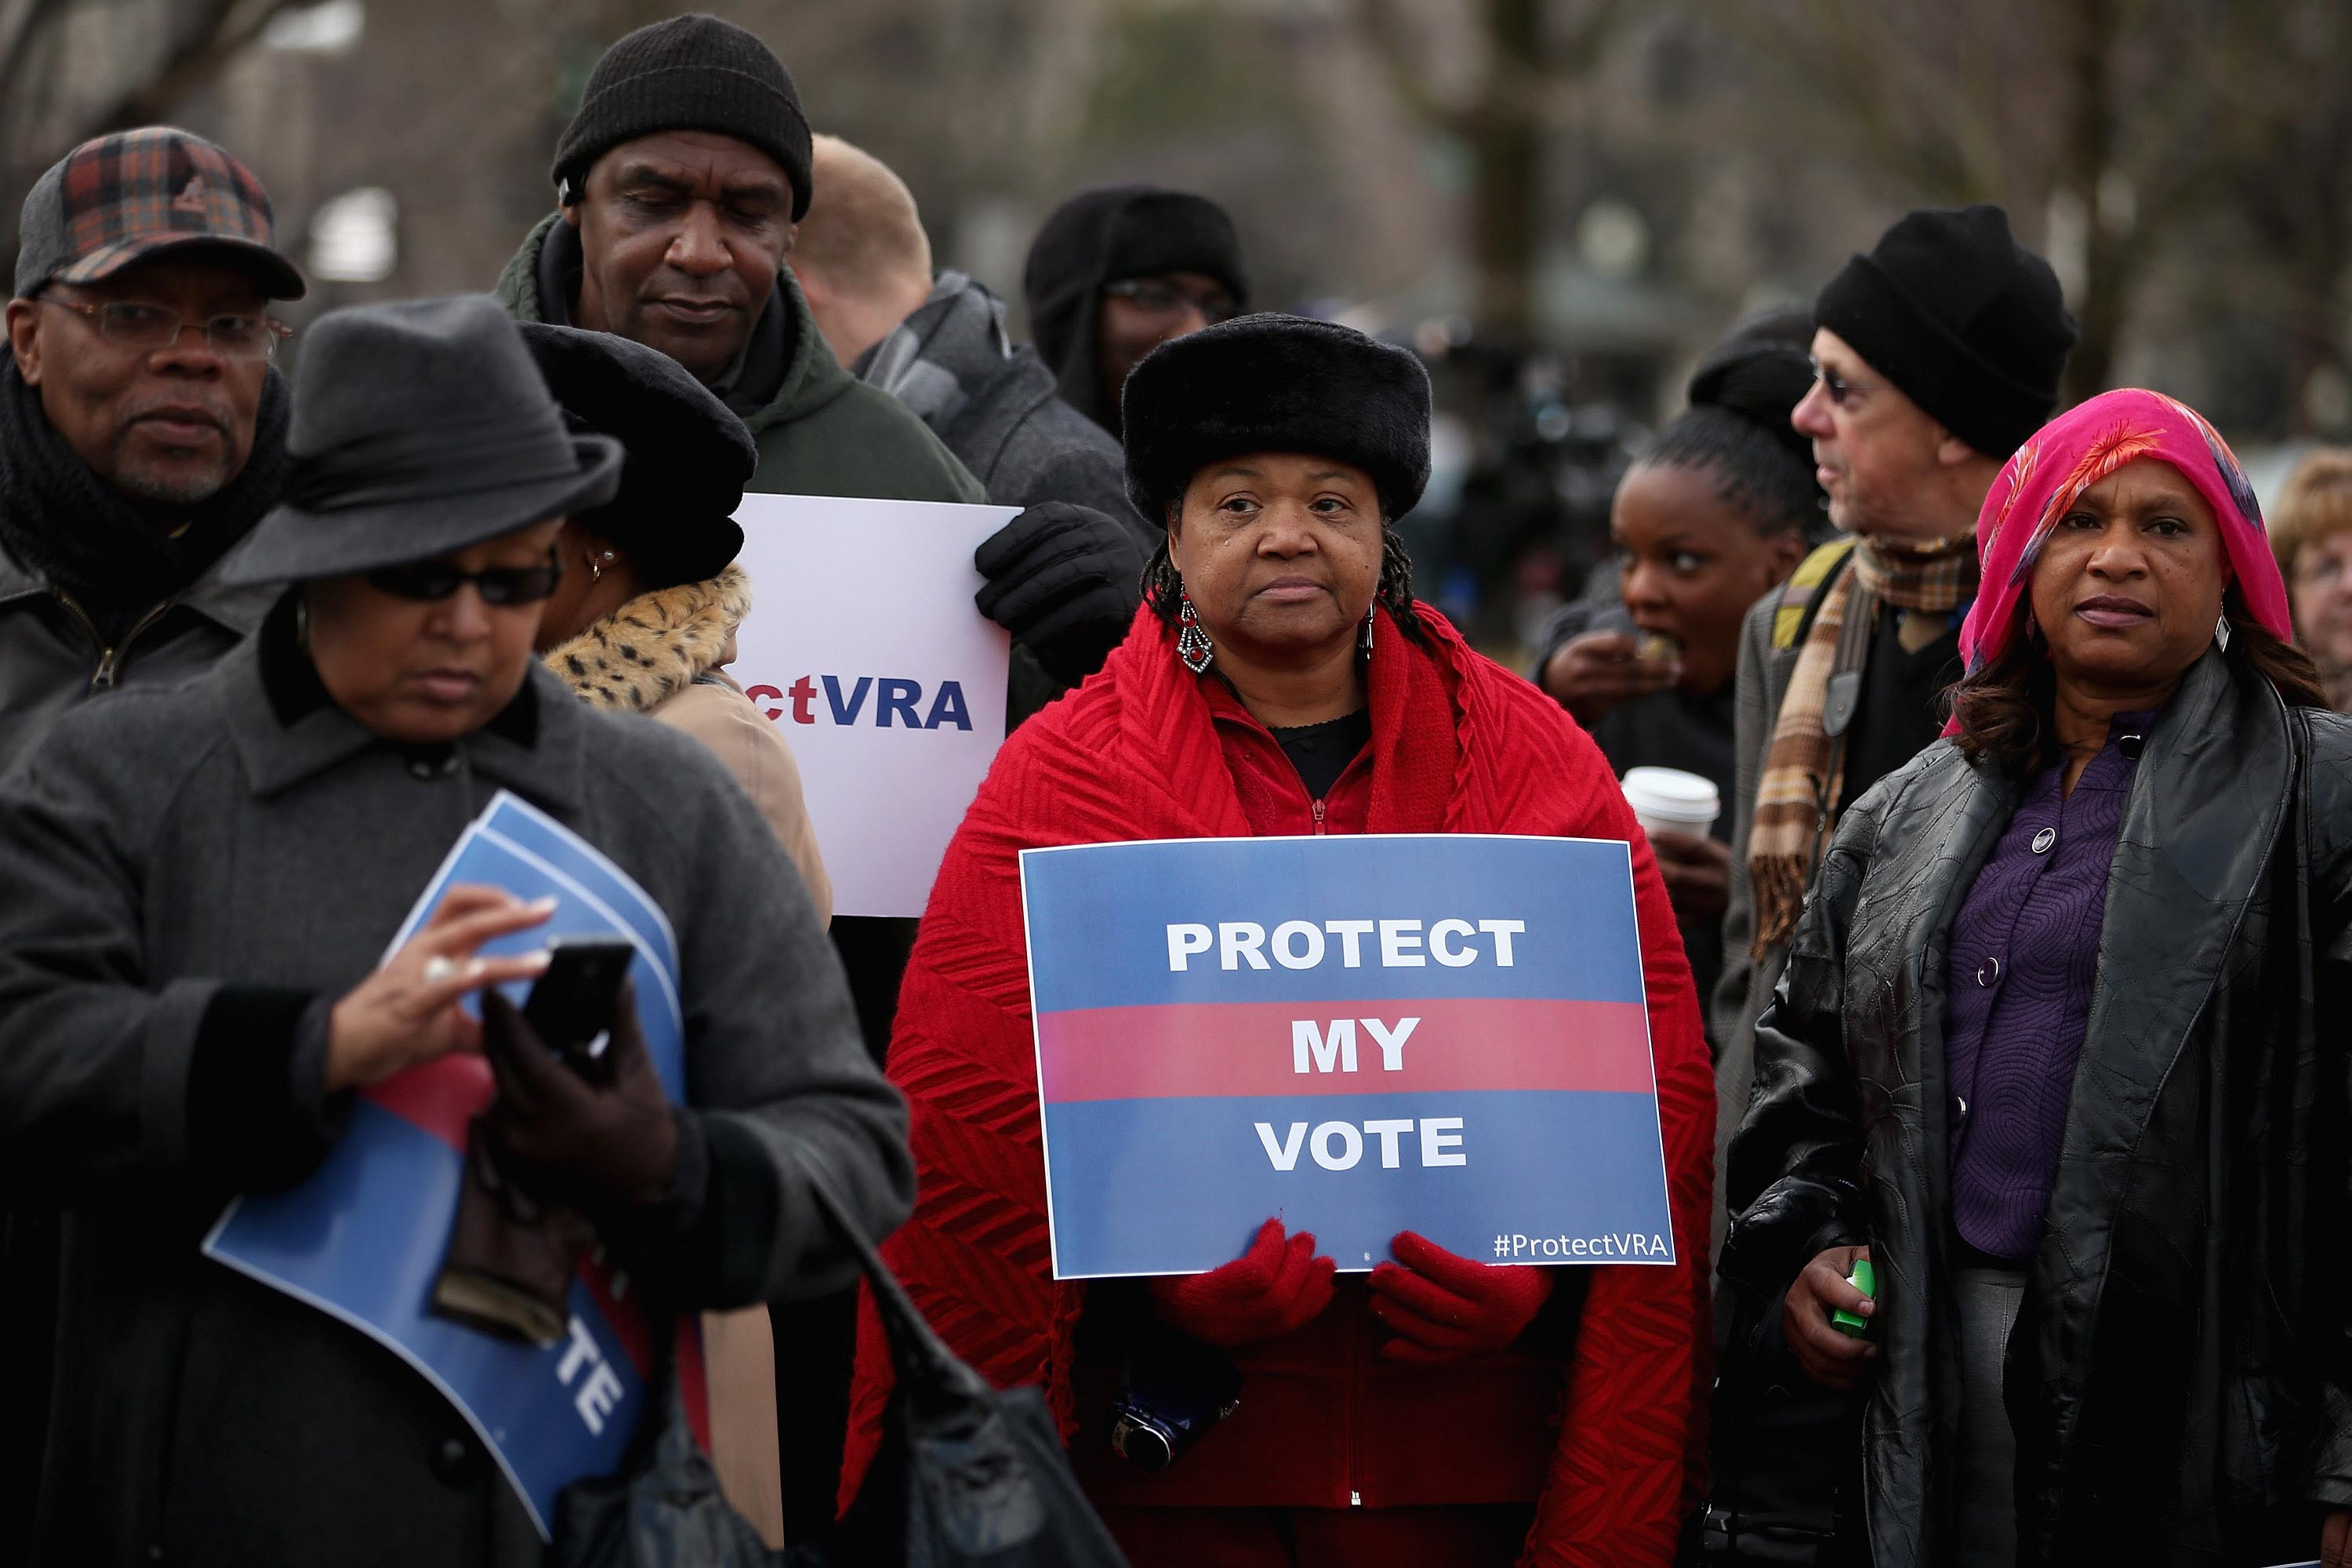 She marched in Selma as a young girl. Now she's seeing history repeat on voting rights